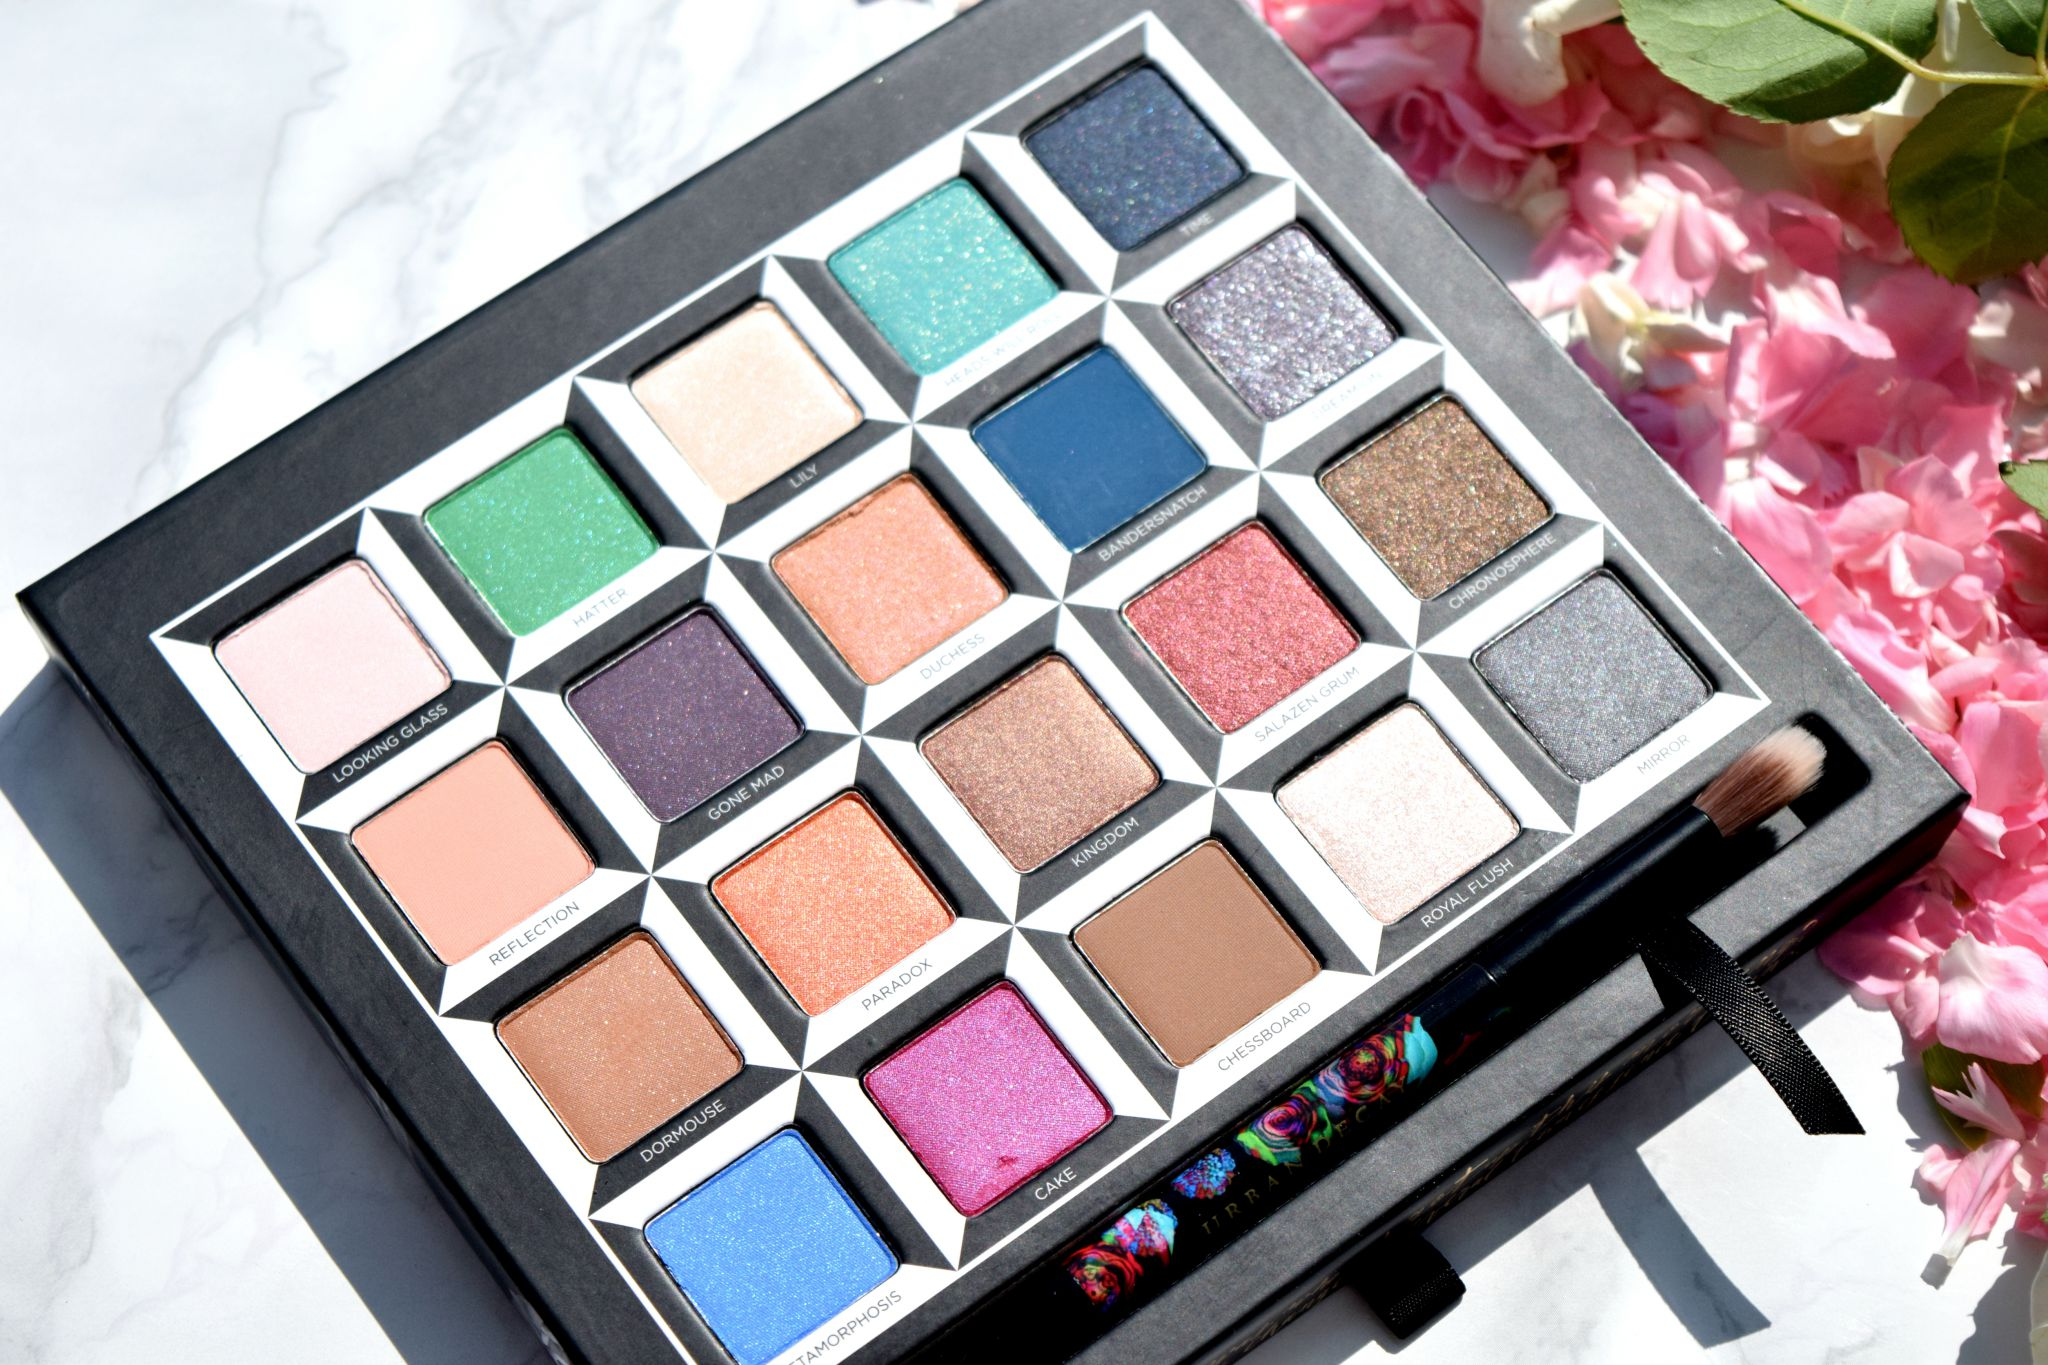 Urban Decay Alice in Wonderland shadow palette